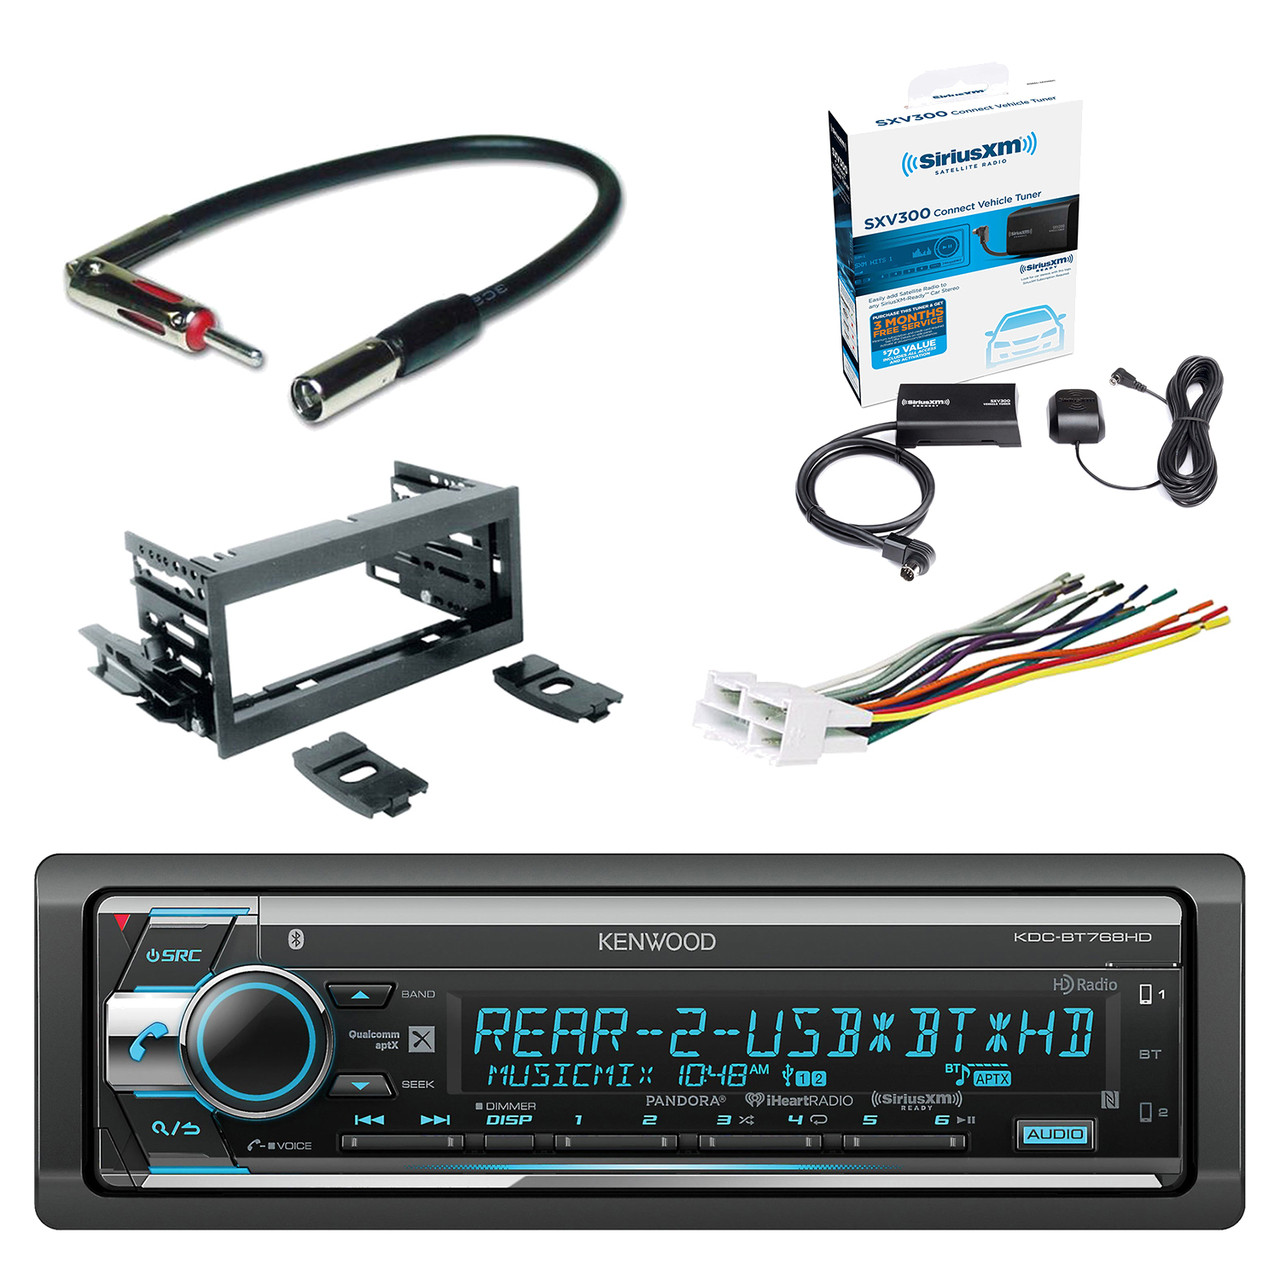 medium resolution of  car audio receiver with bluetooth siriusxm satellite radio vehicle tuner kit scosche dash kit scosche gm micro delco xm radio wiring harness adapter